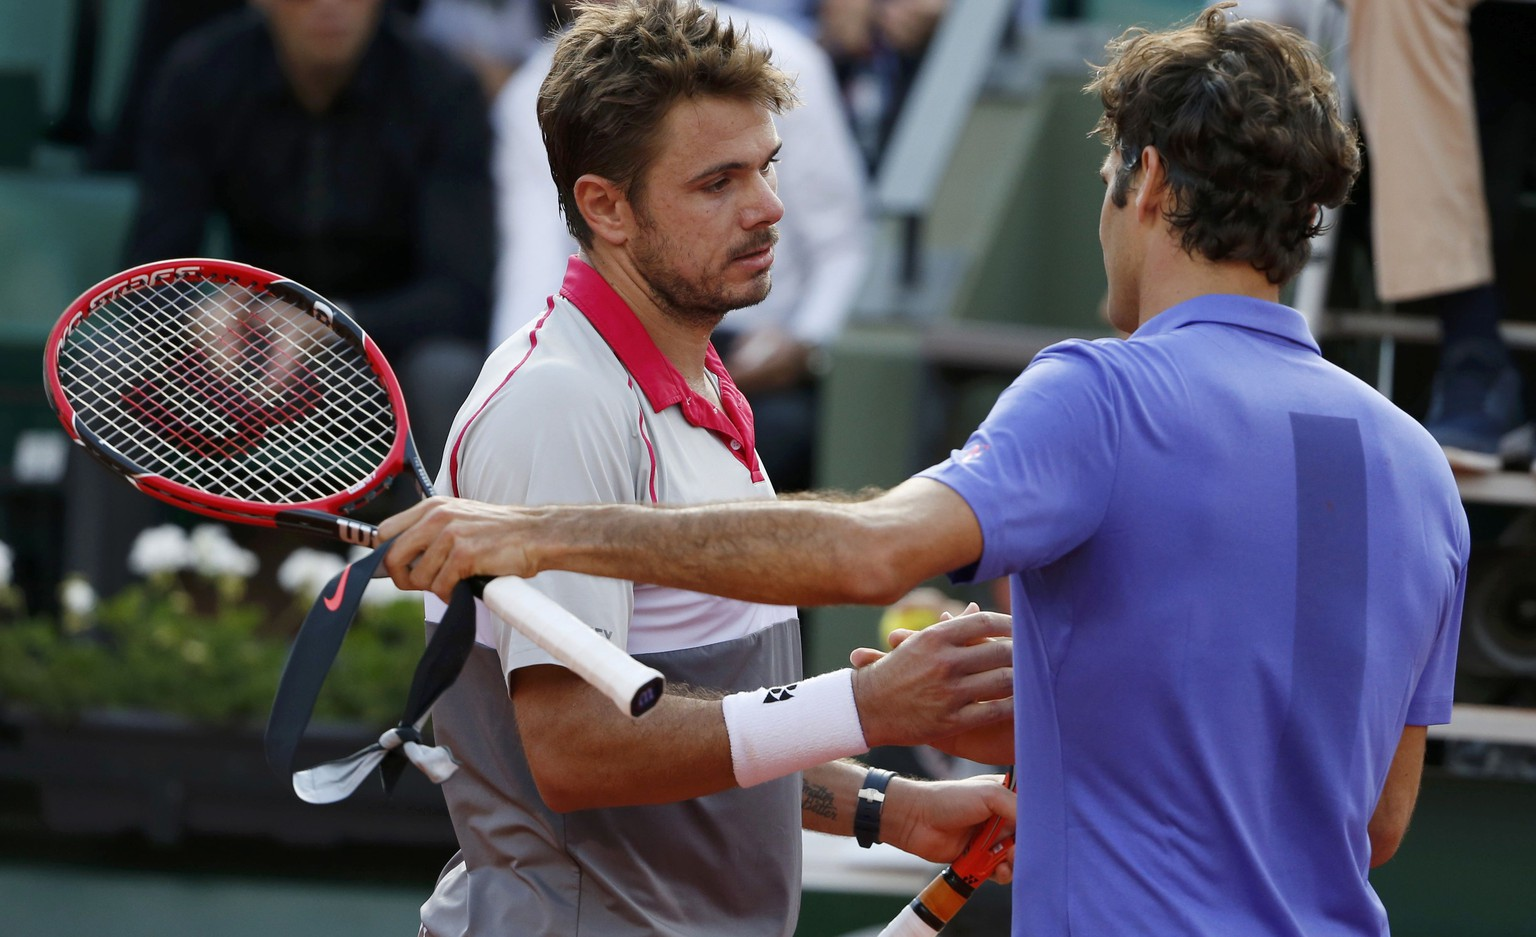 Stan Wawrinka of Switzerland shakes hands with his compatriot Roger Federer after winning their men's quarter-final match during the French Open tennis tournament at the Roland Garros stadium in Paris, France, June 2, 2015.           REUTERS/Vincent Kessler